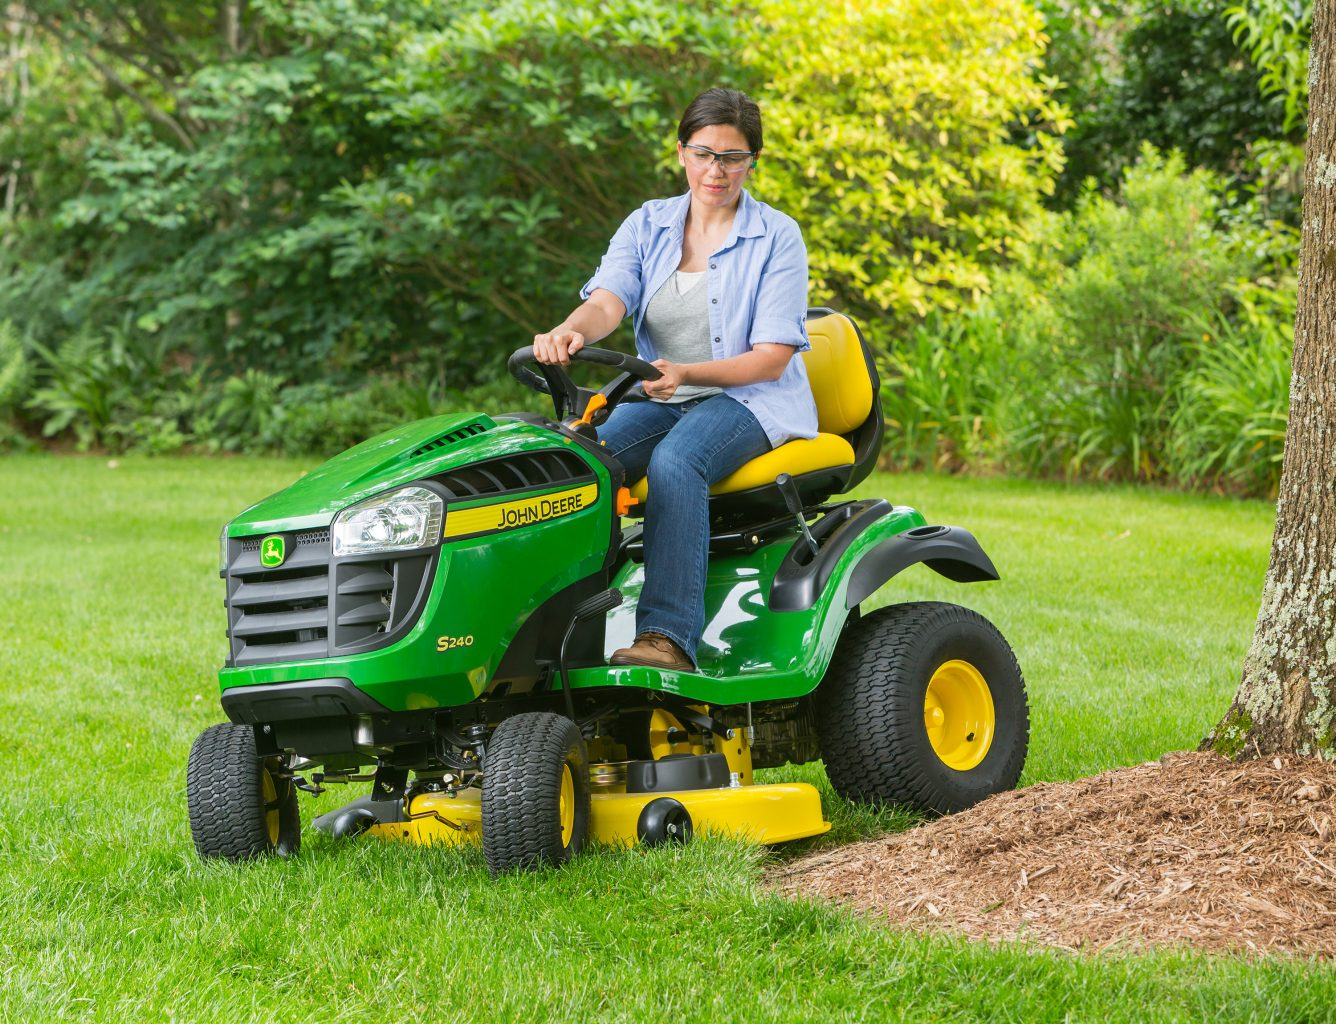 S240-lawn-mower-tractor-deck